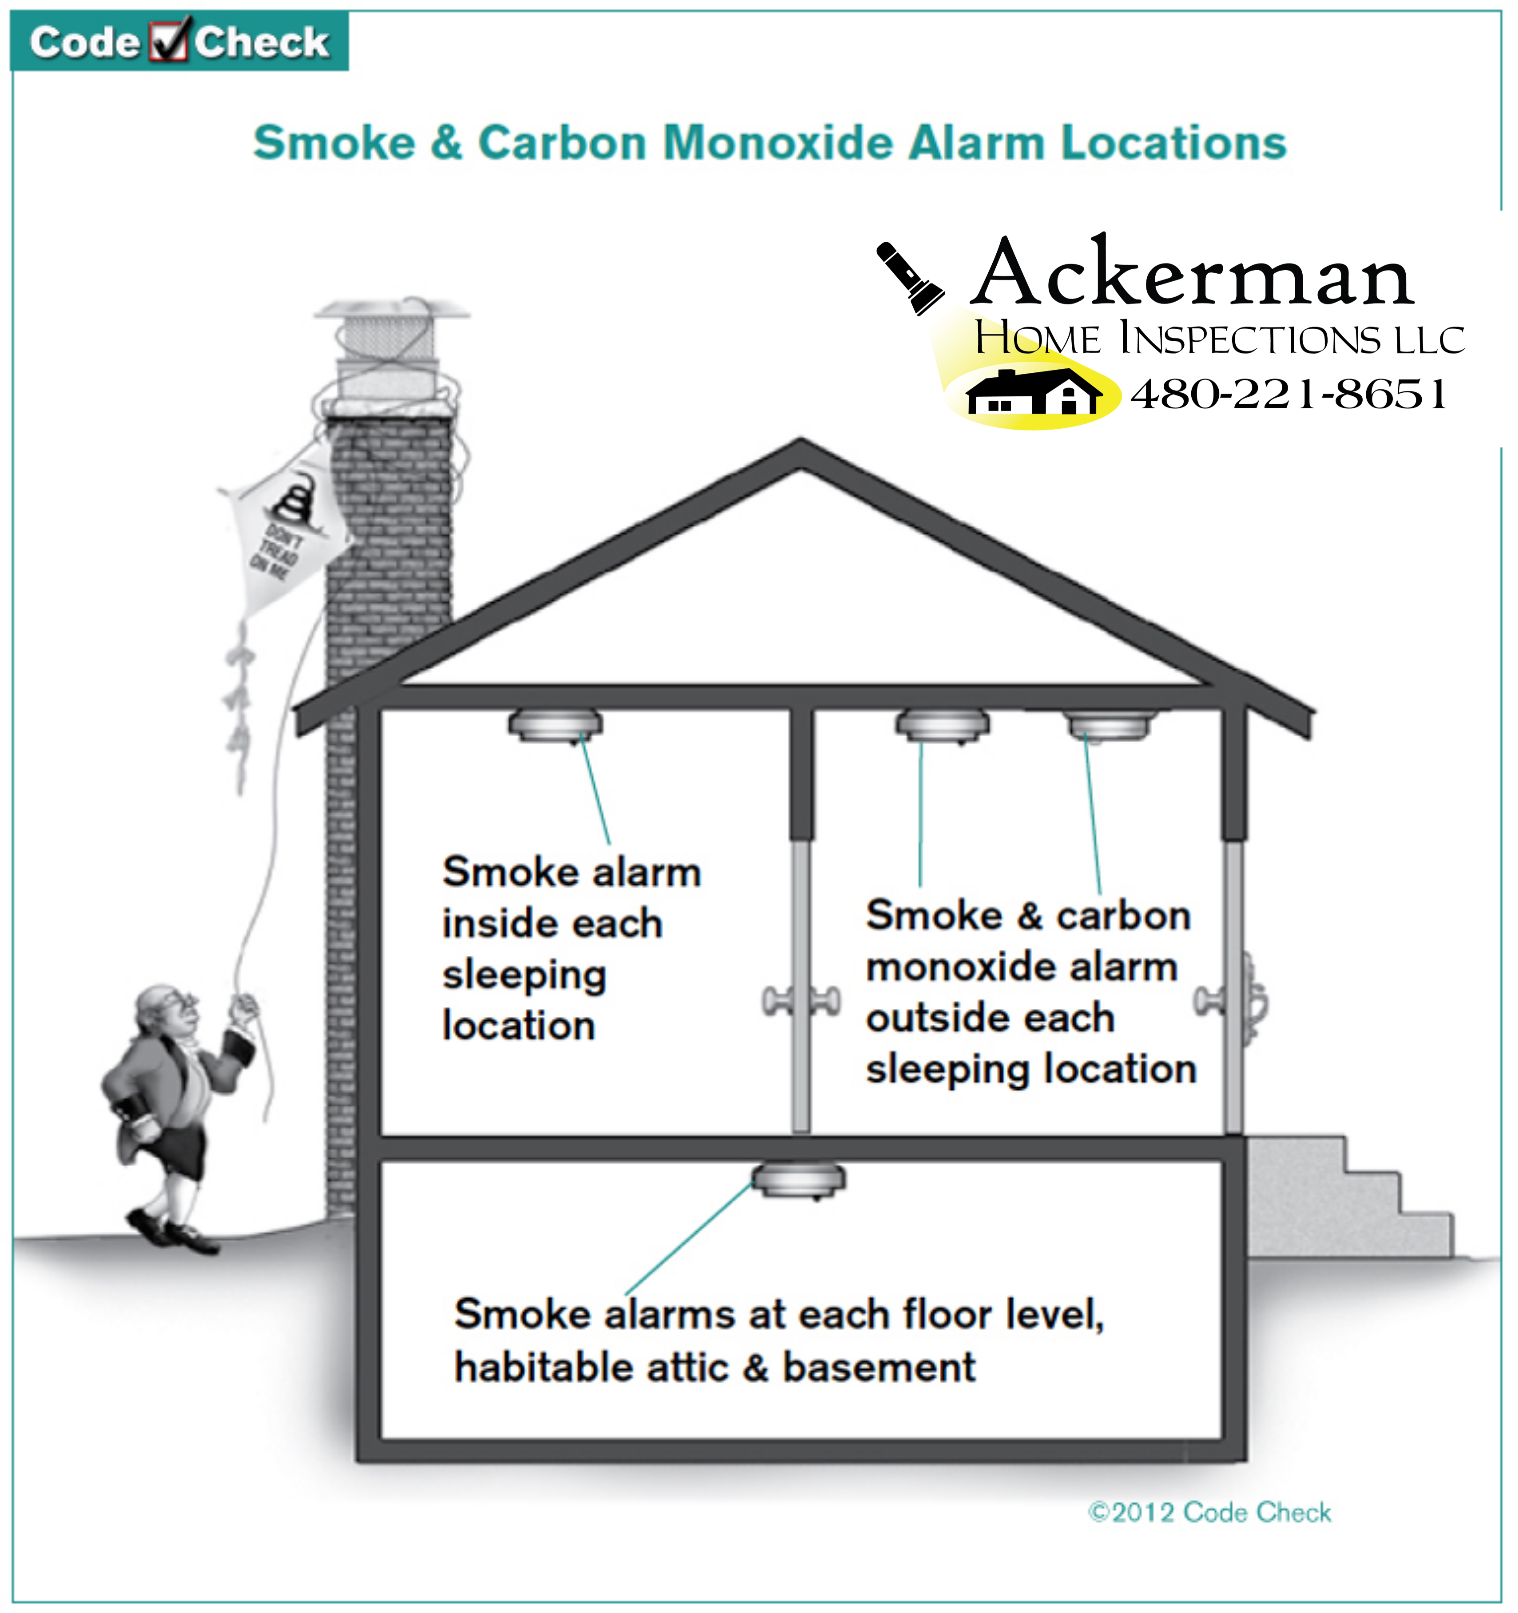 Arizona is one of over 20 states that does not have a carbon monoxide detector law. Yet over 300 people a year die of CO poisoning.